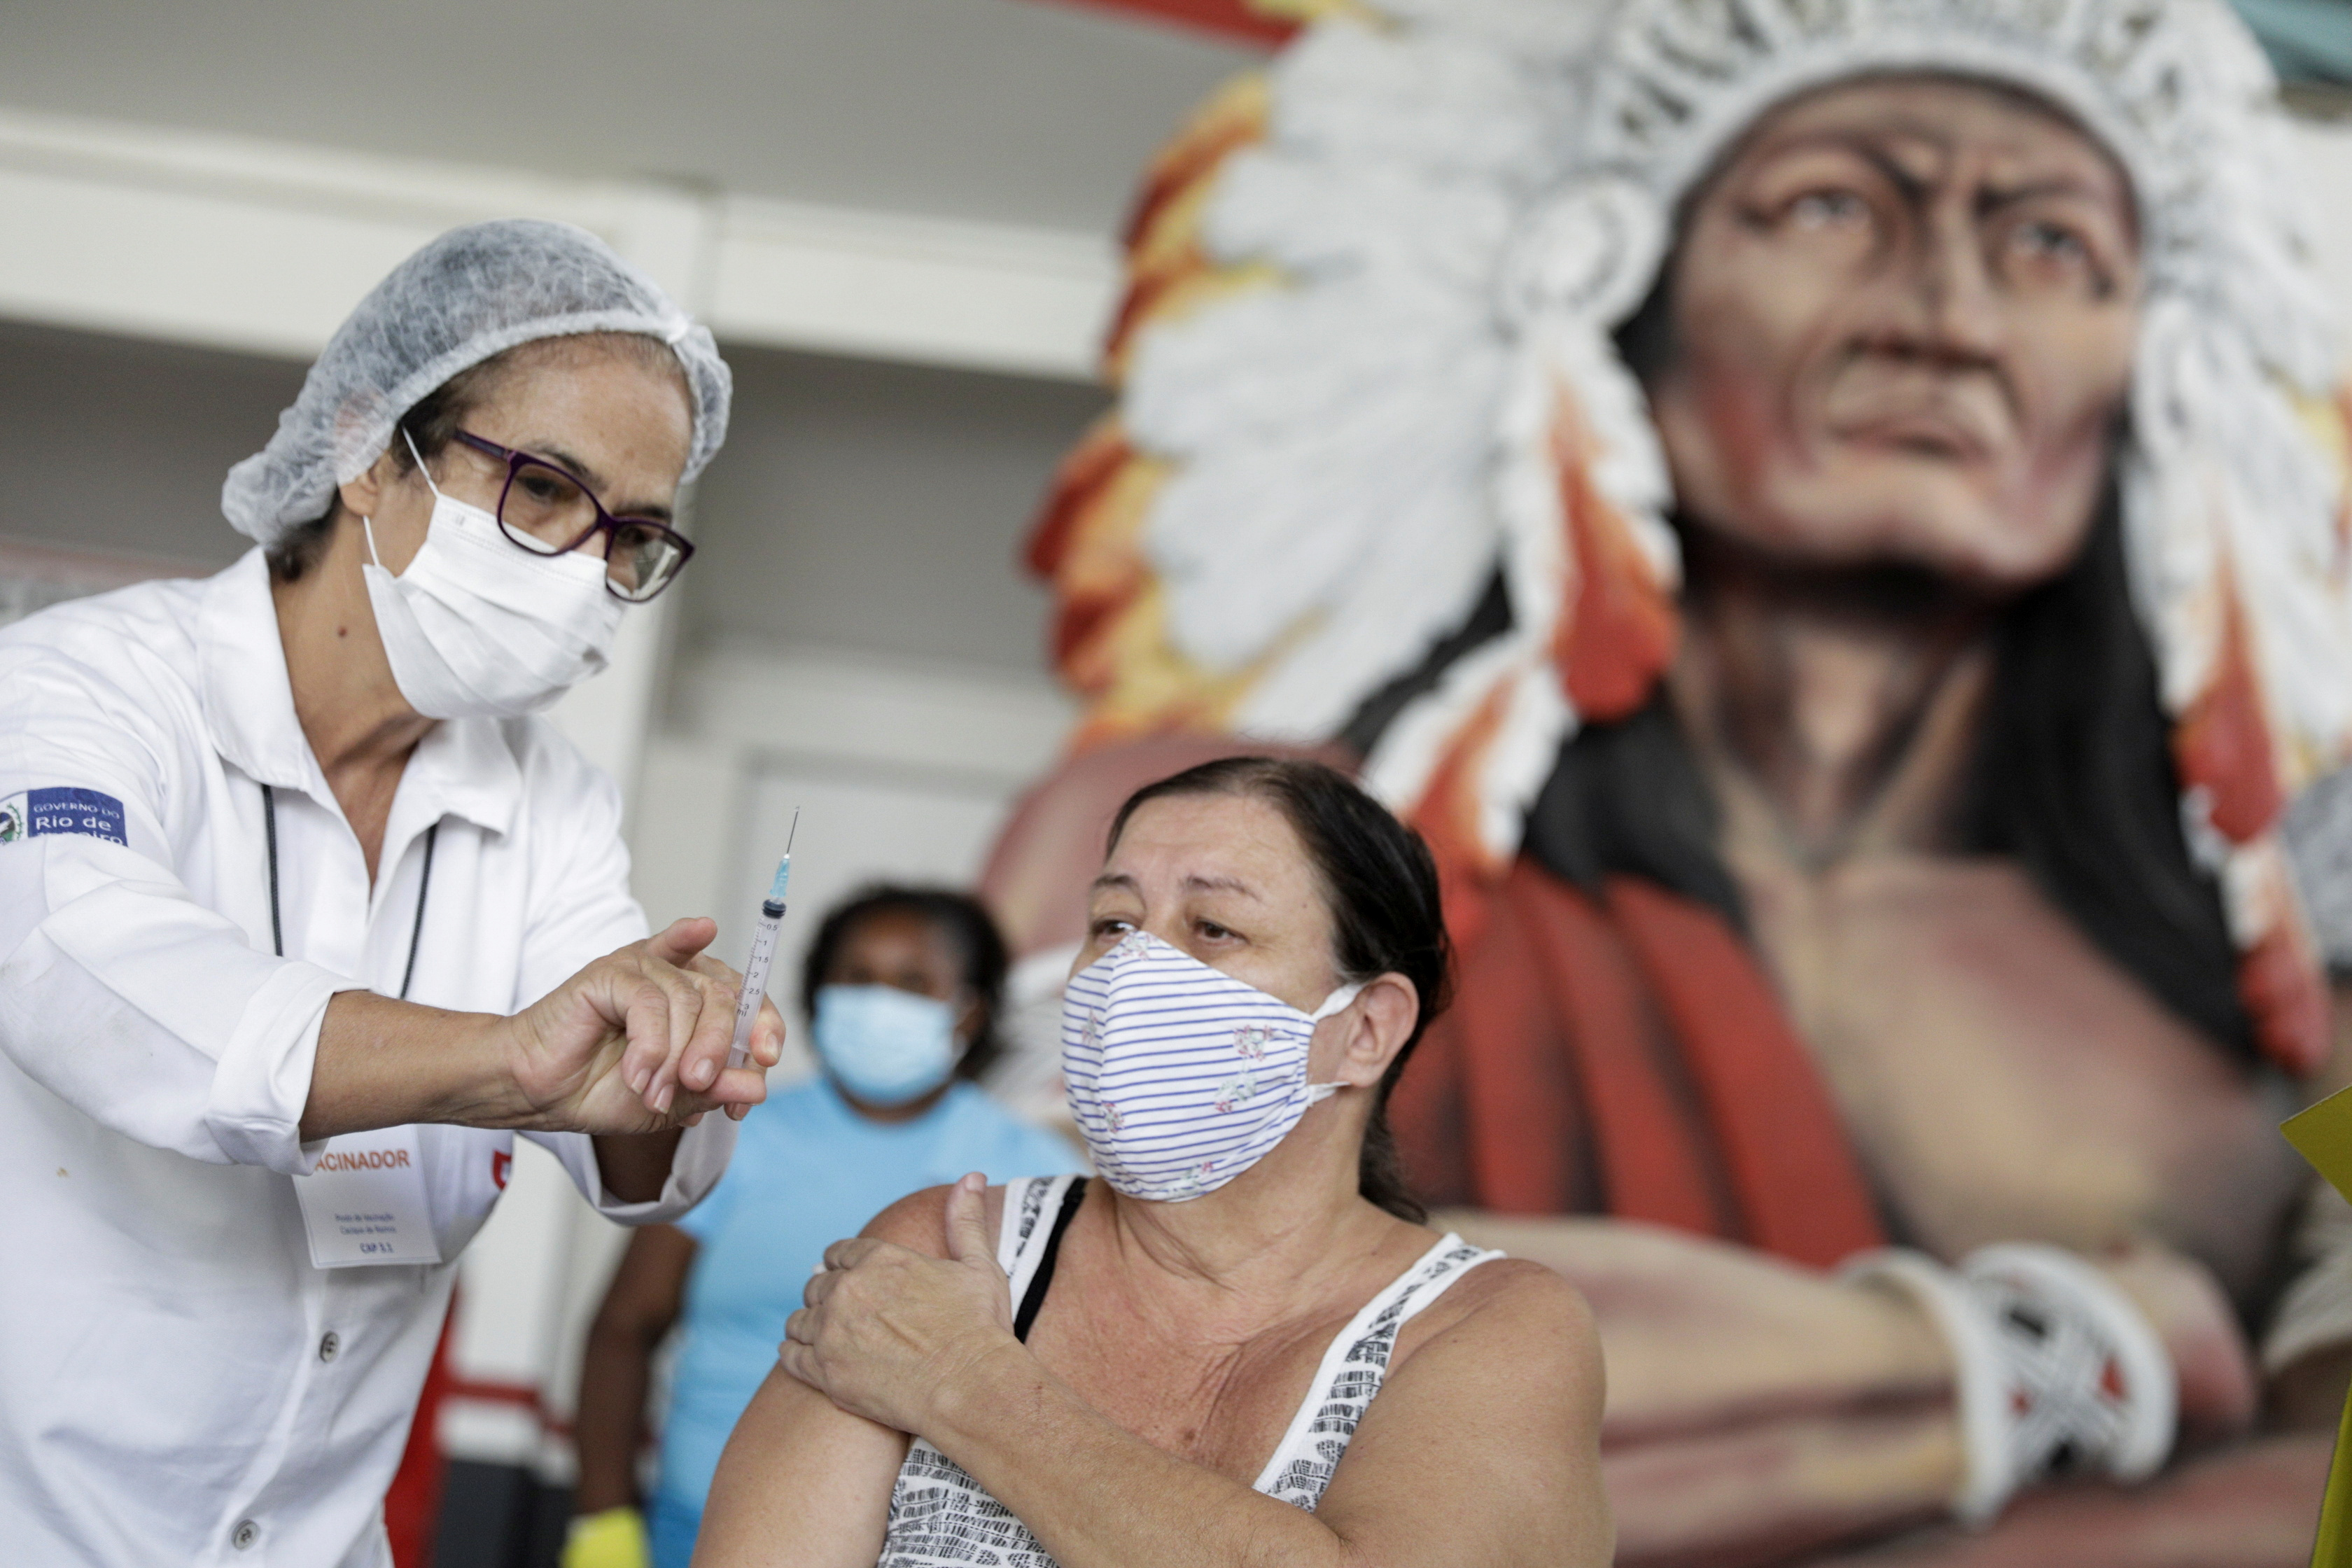 A healthcare worker shows the syringe to a woman after applying a dose of Sinovac's CoronaVac coronavirus disease (COVID-19) vaccine at Cacique de Ramos, one of the most traditional carnival blocks of Rio de Janeiro, Brazil April 8, 2021. REUTERS/Ricardo Moraes